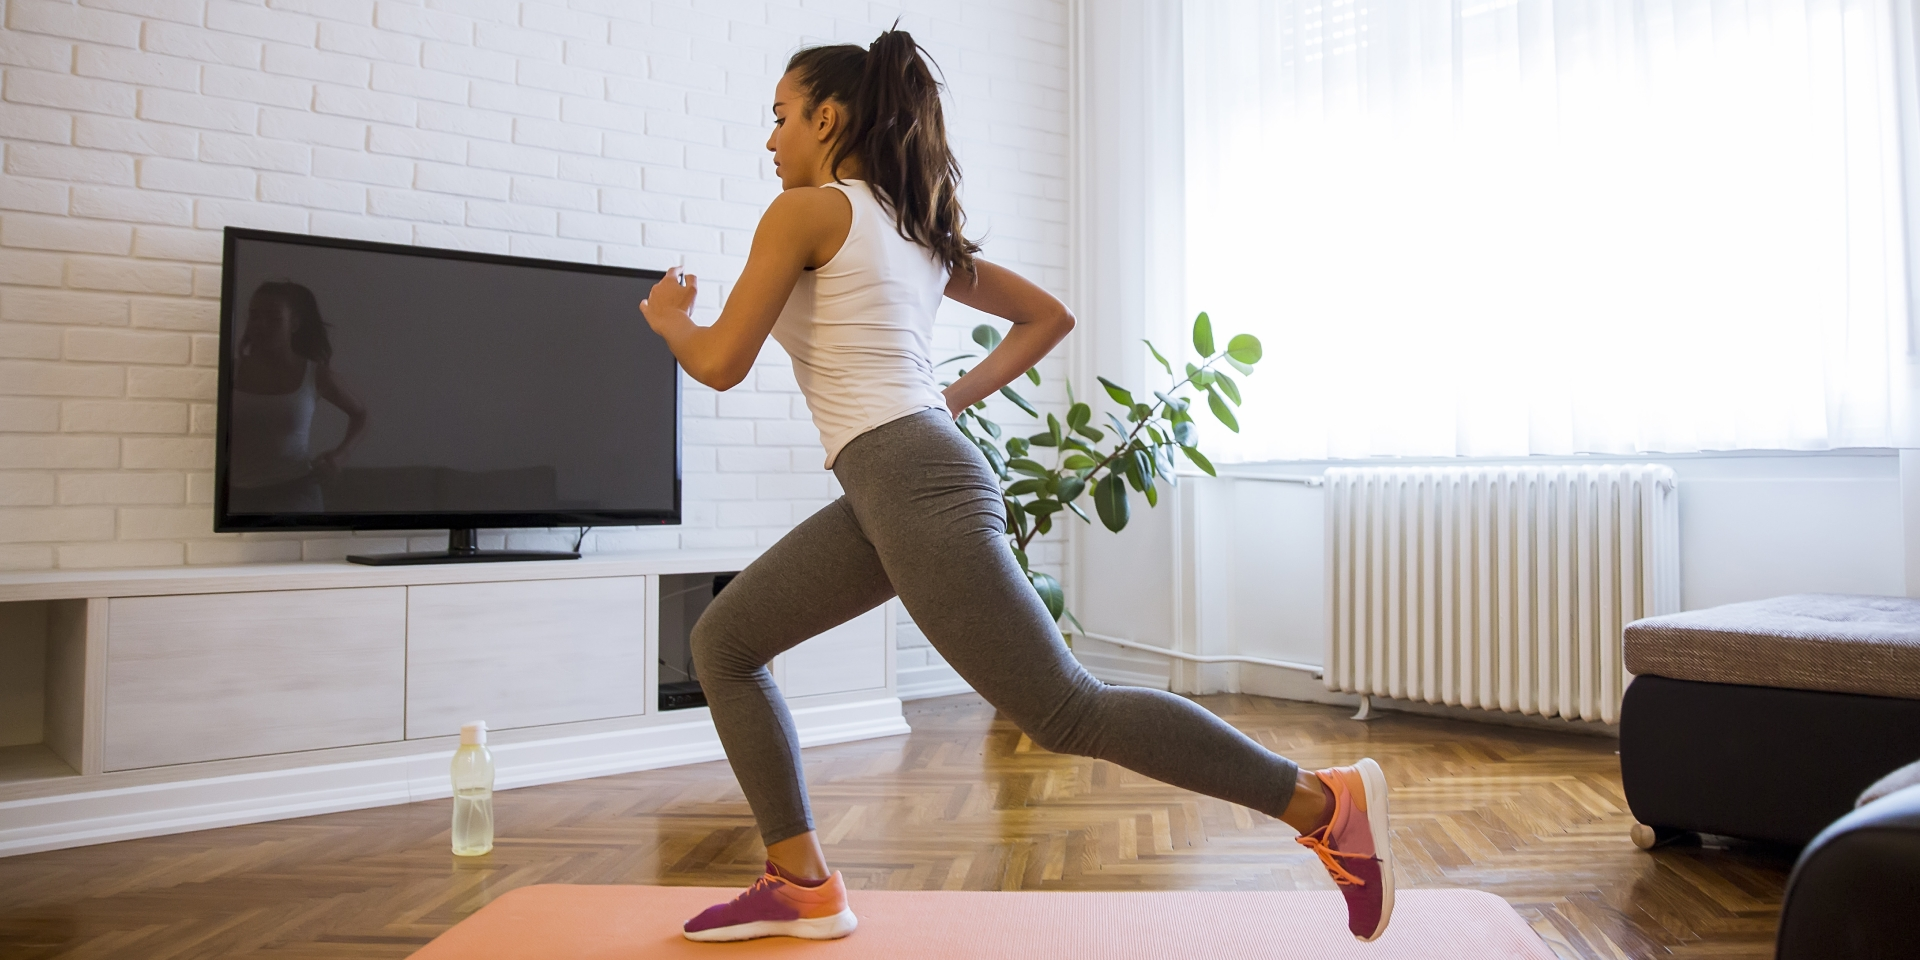 Woman working out in home on yoga mat in front of tv